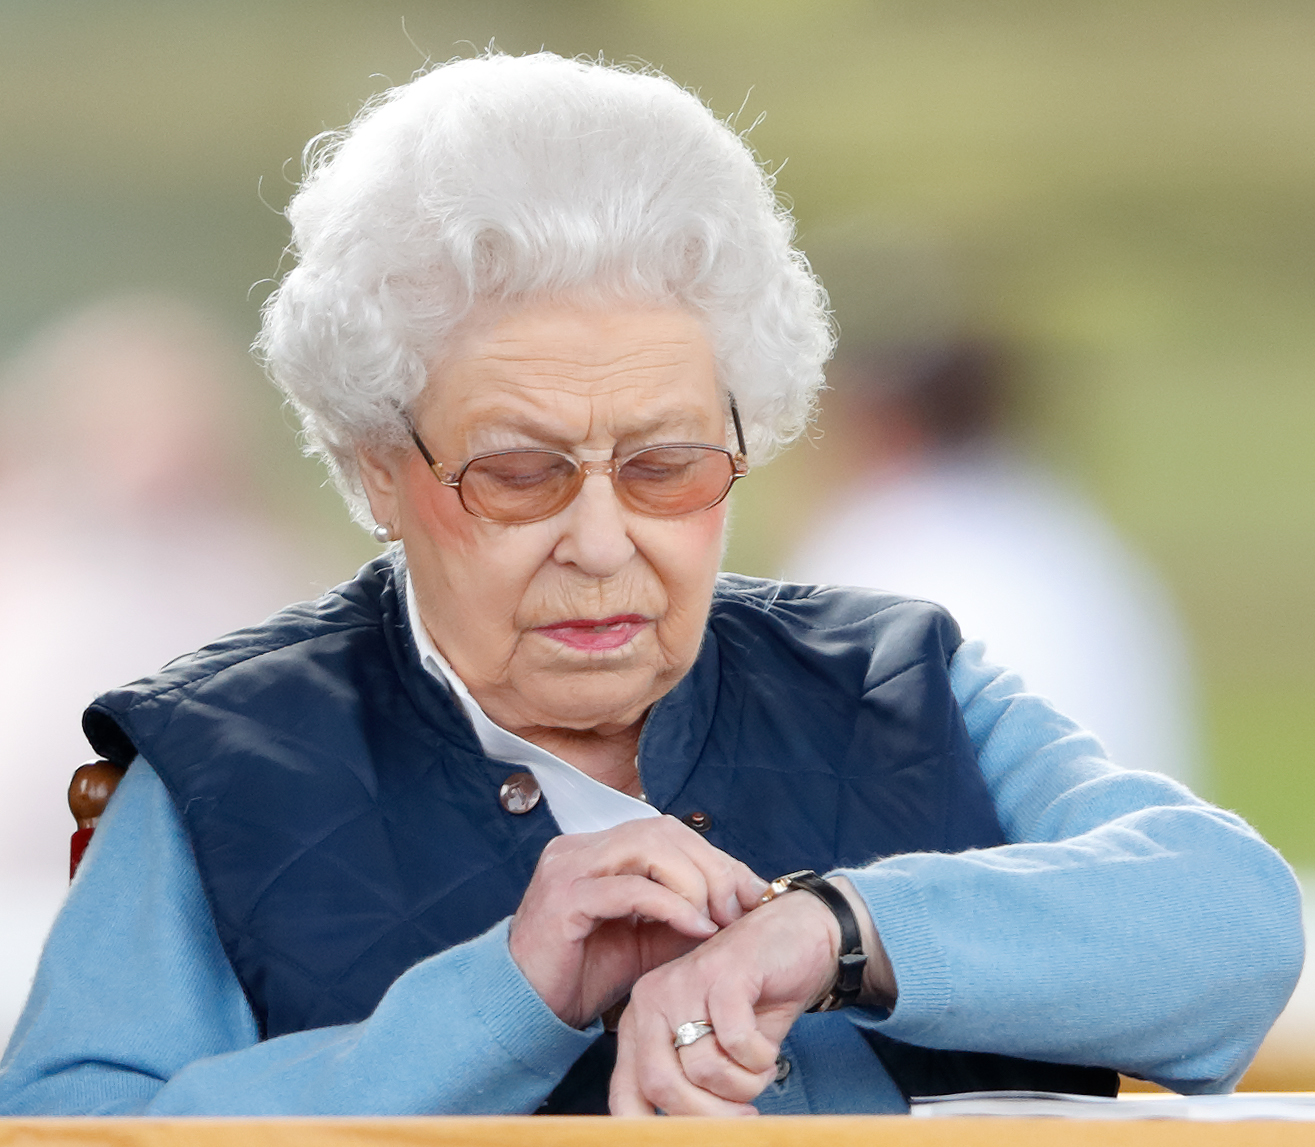 The Queen consults her wristpiece during the event. (Photo by Max Mumby/Indigo/Getty Images